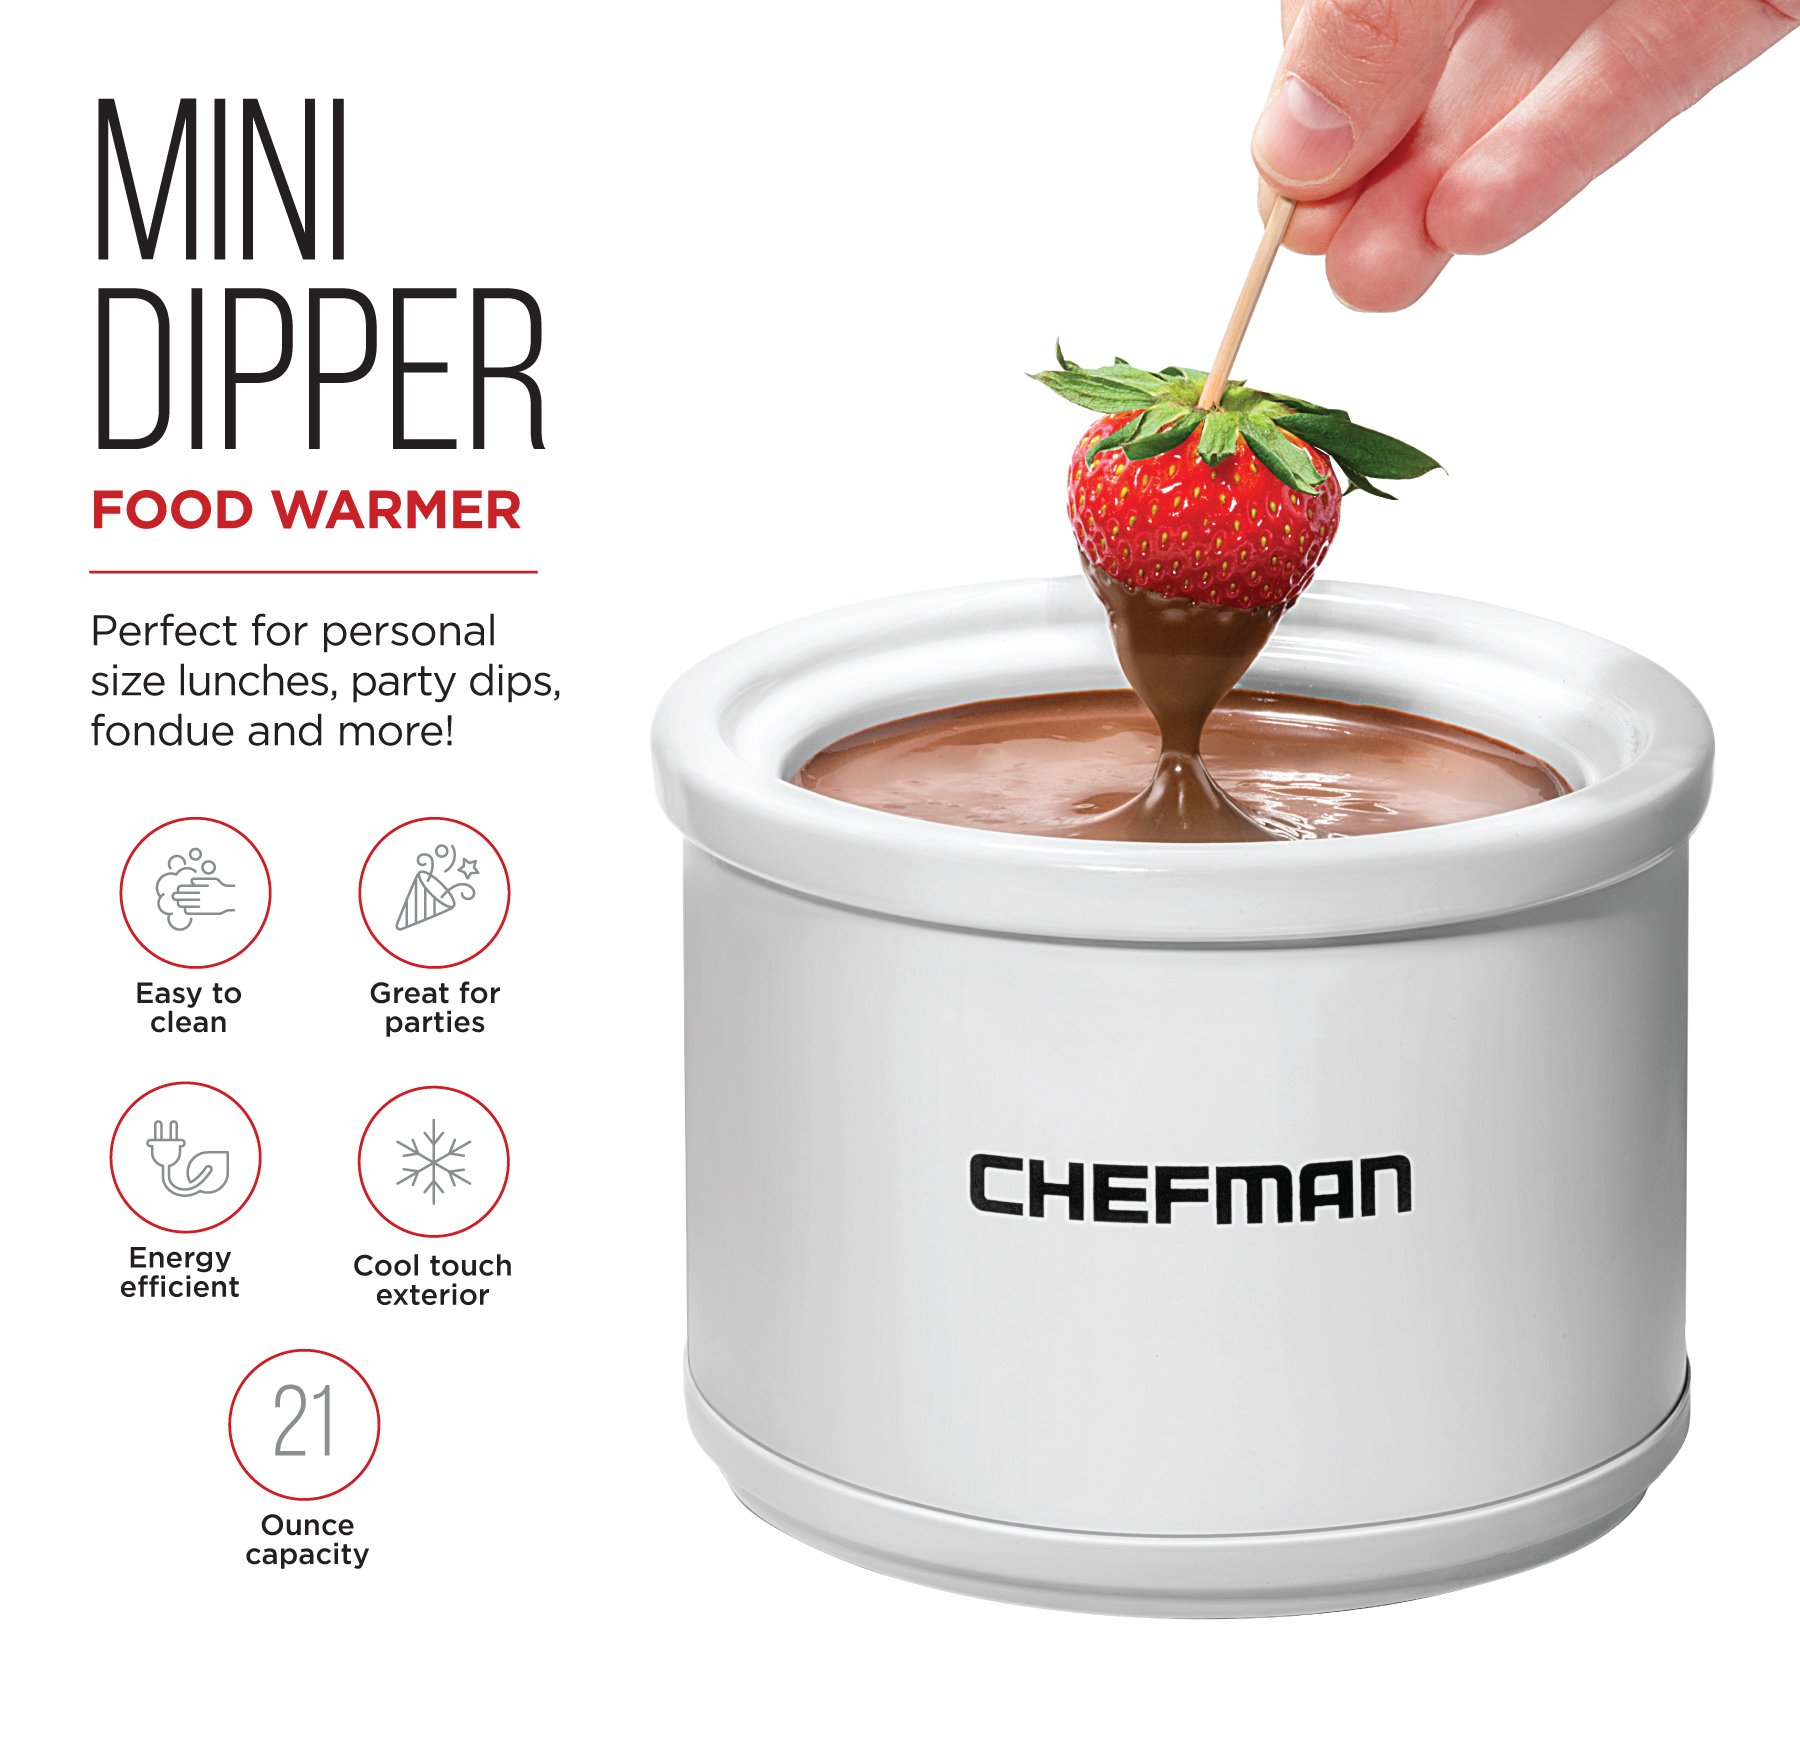 Chefman Mini Dipper Fondue Maker Food Warmer, Extra Small, 21 oz, White by Chefman (Image #5)